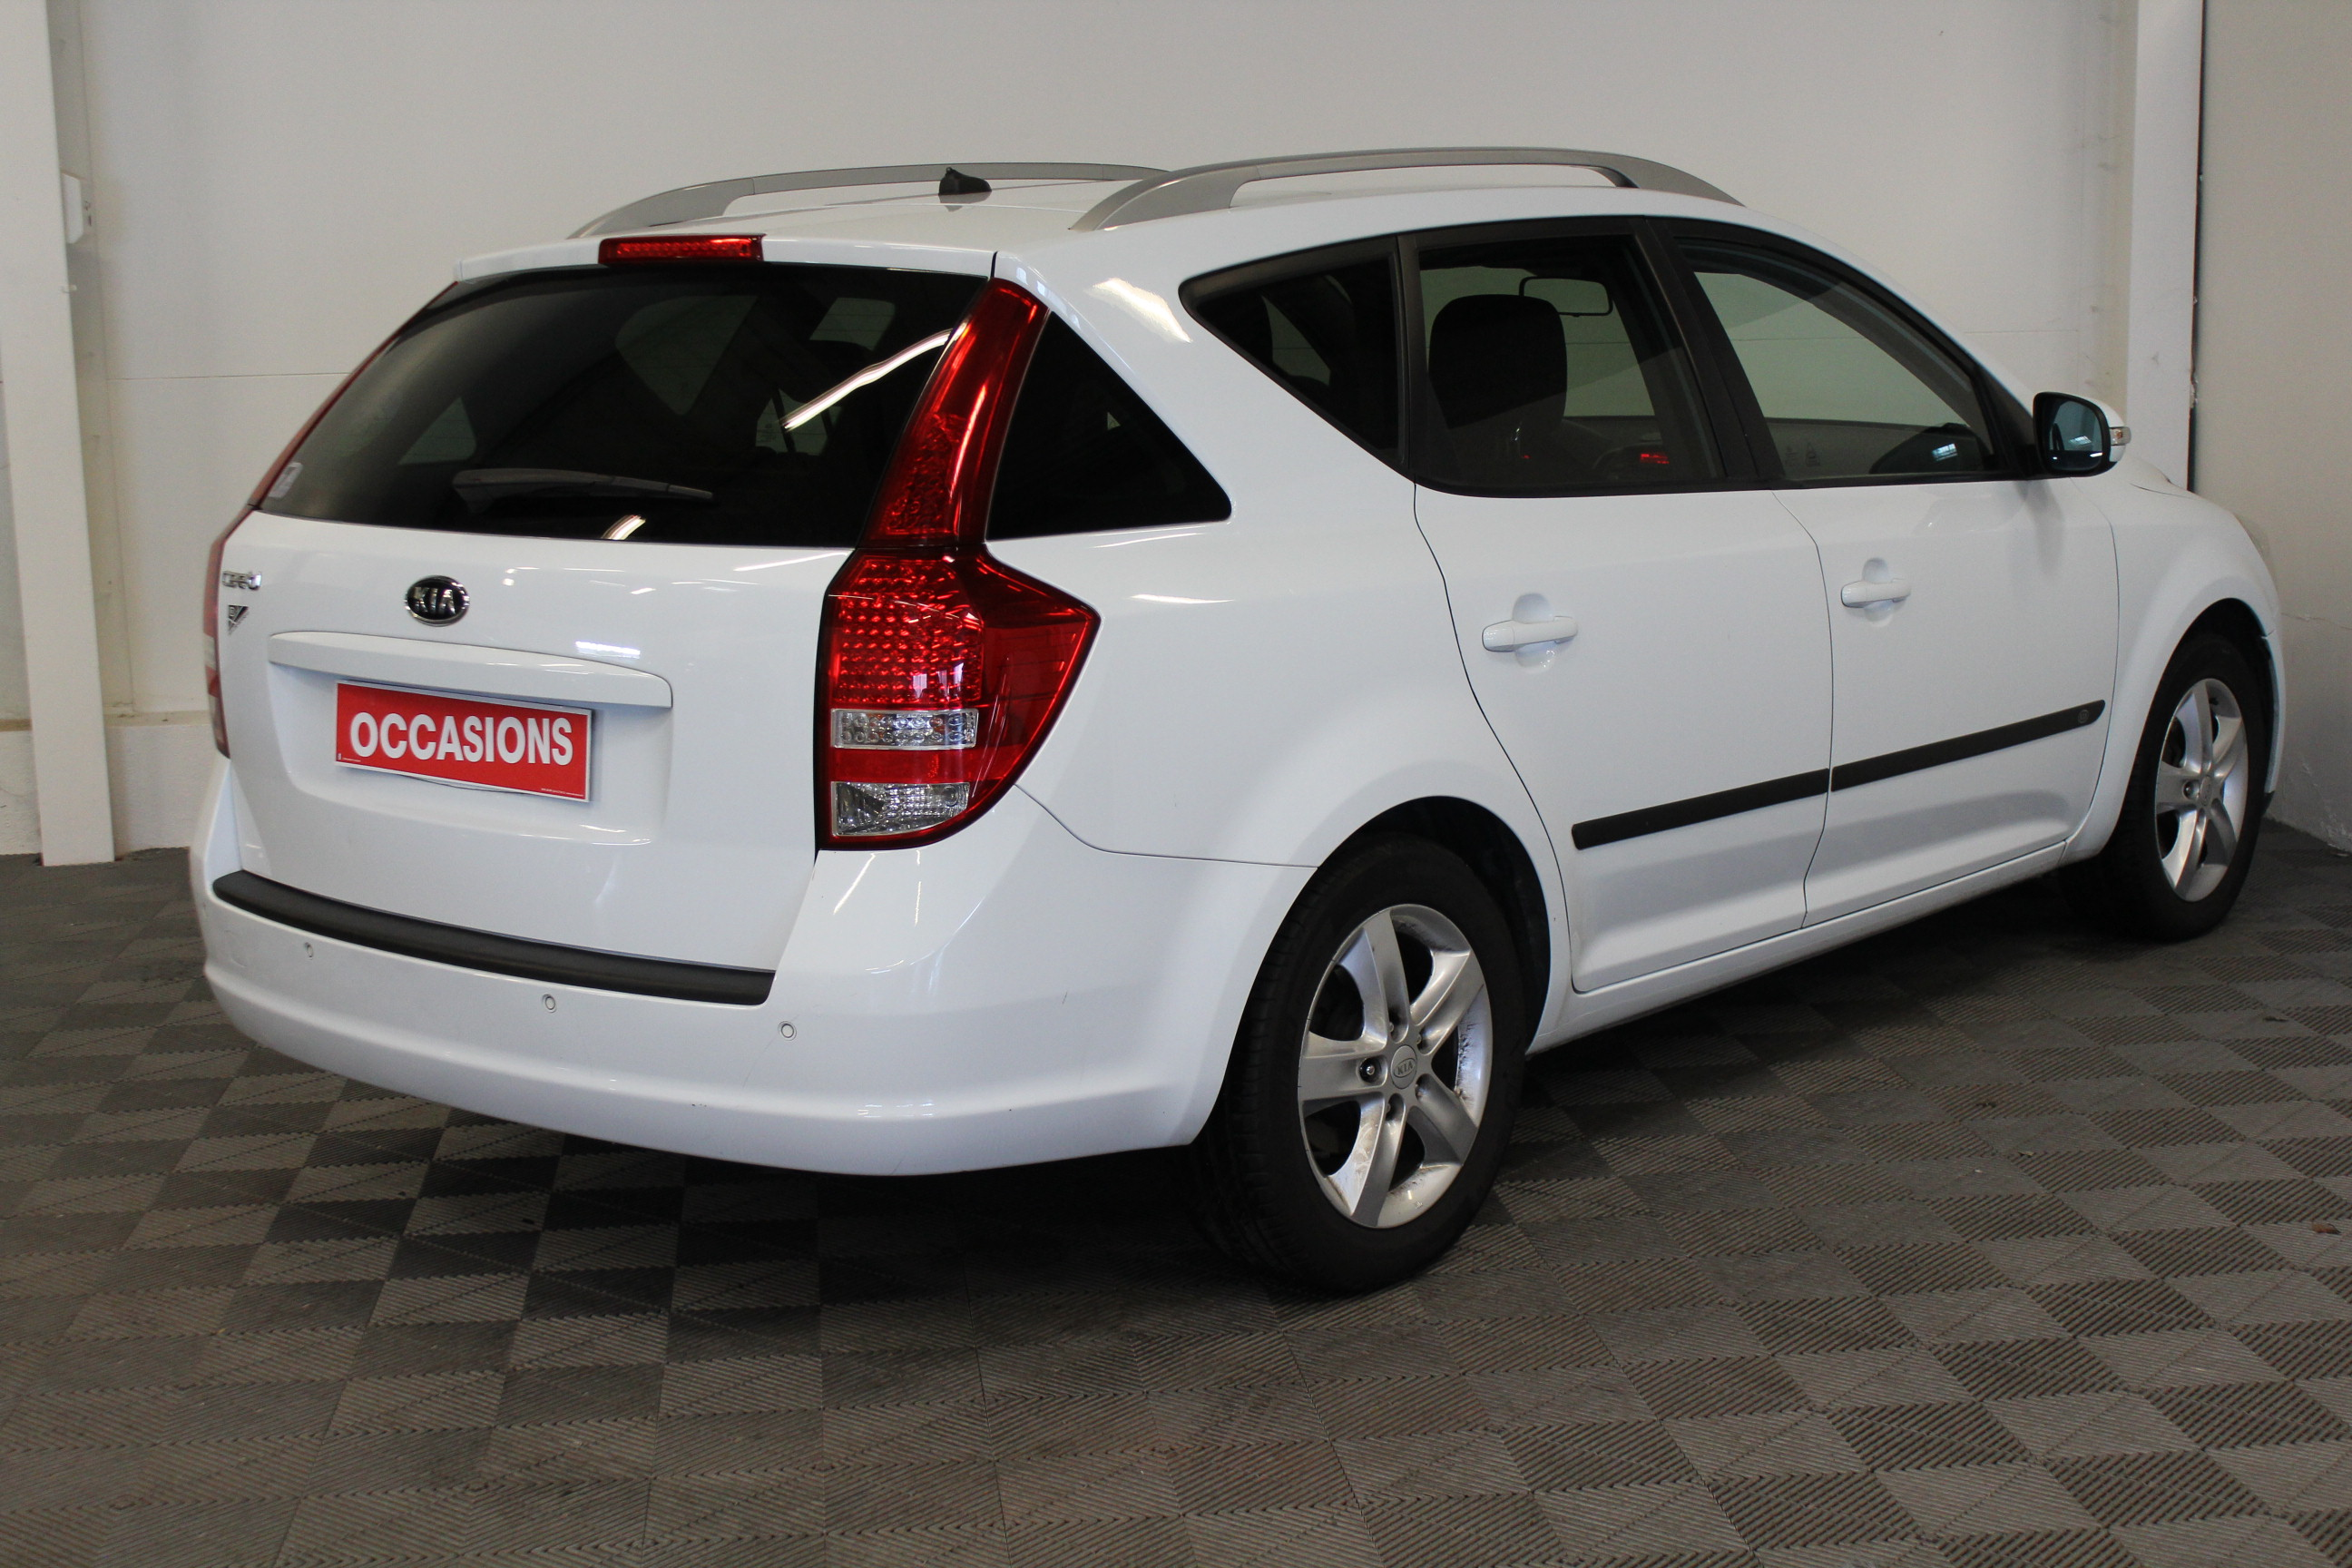 KIA CEE'D SW 2011 à 5400 € - Photo n°4